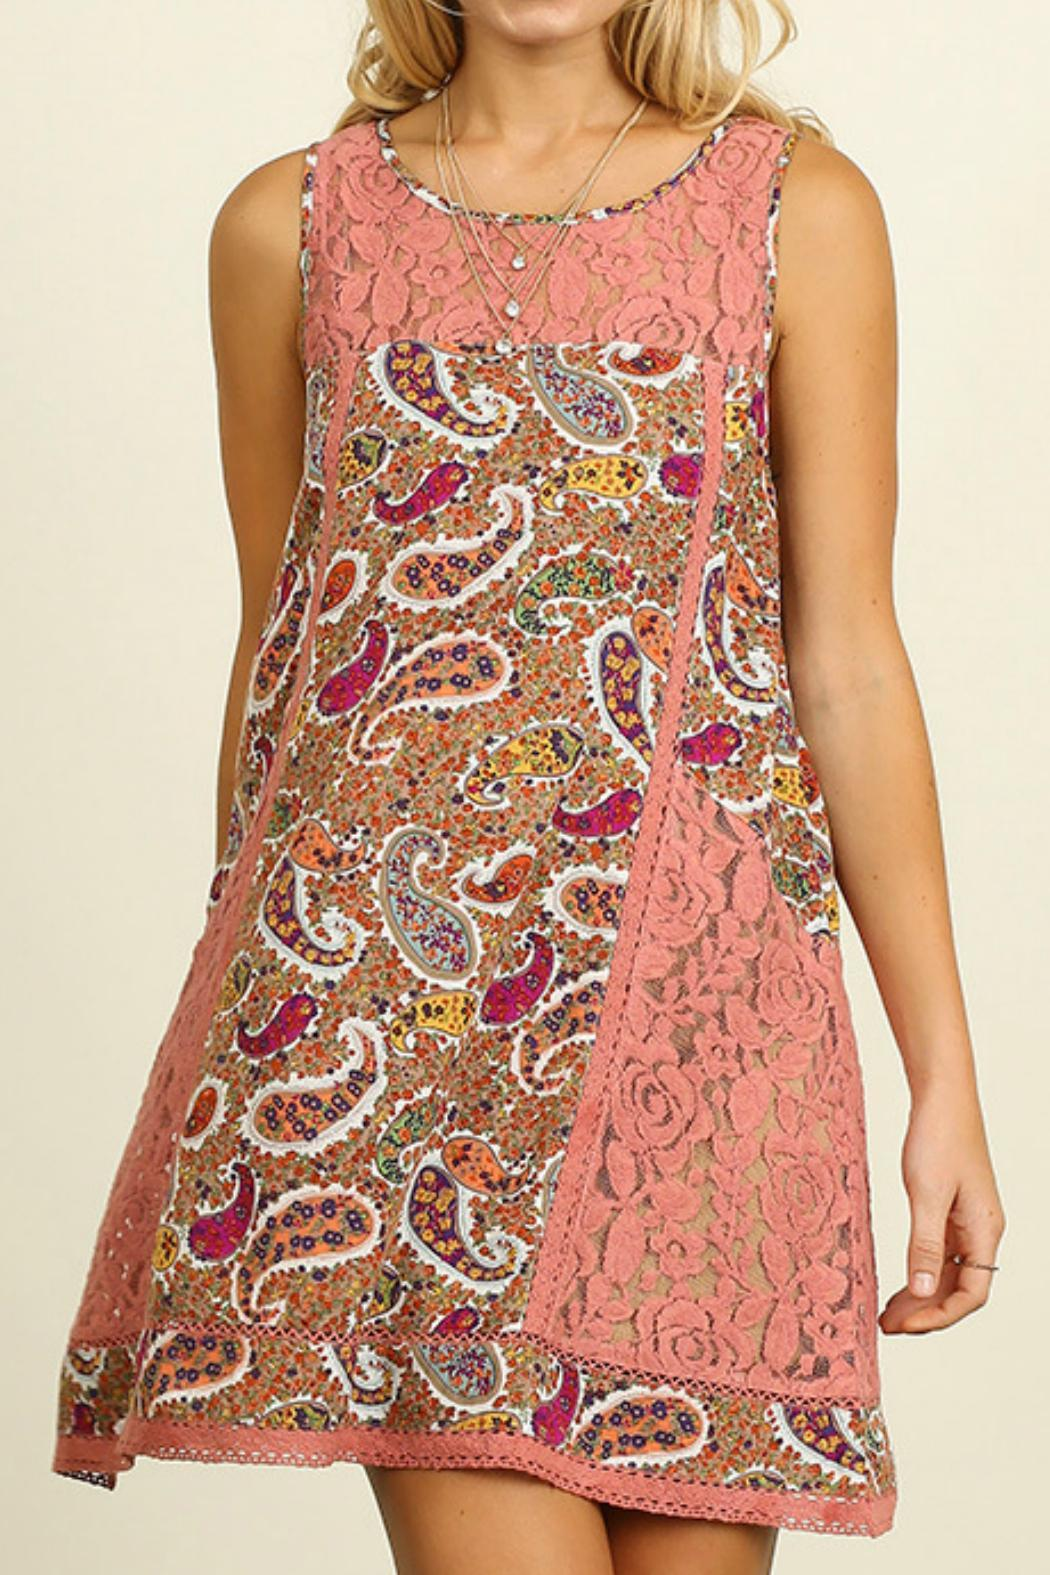 Umgee USA Paisley Print Dress - Main Image